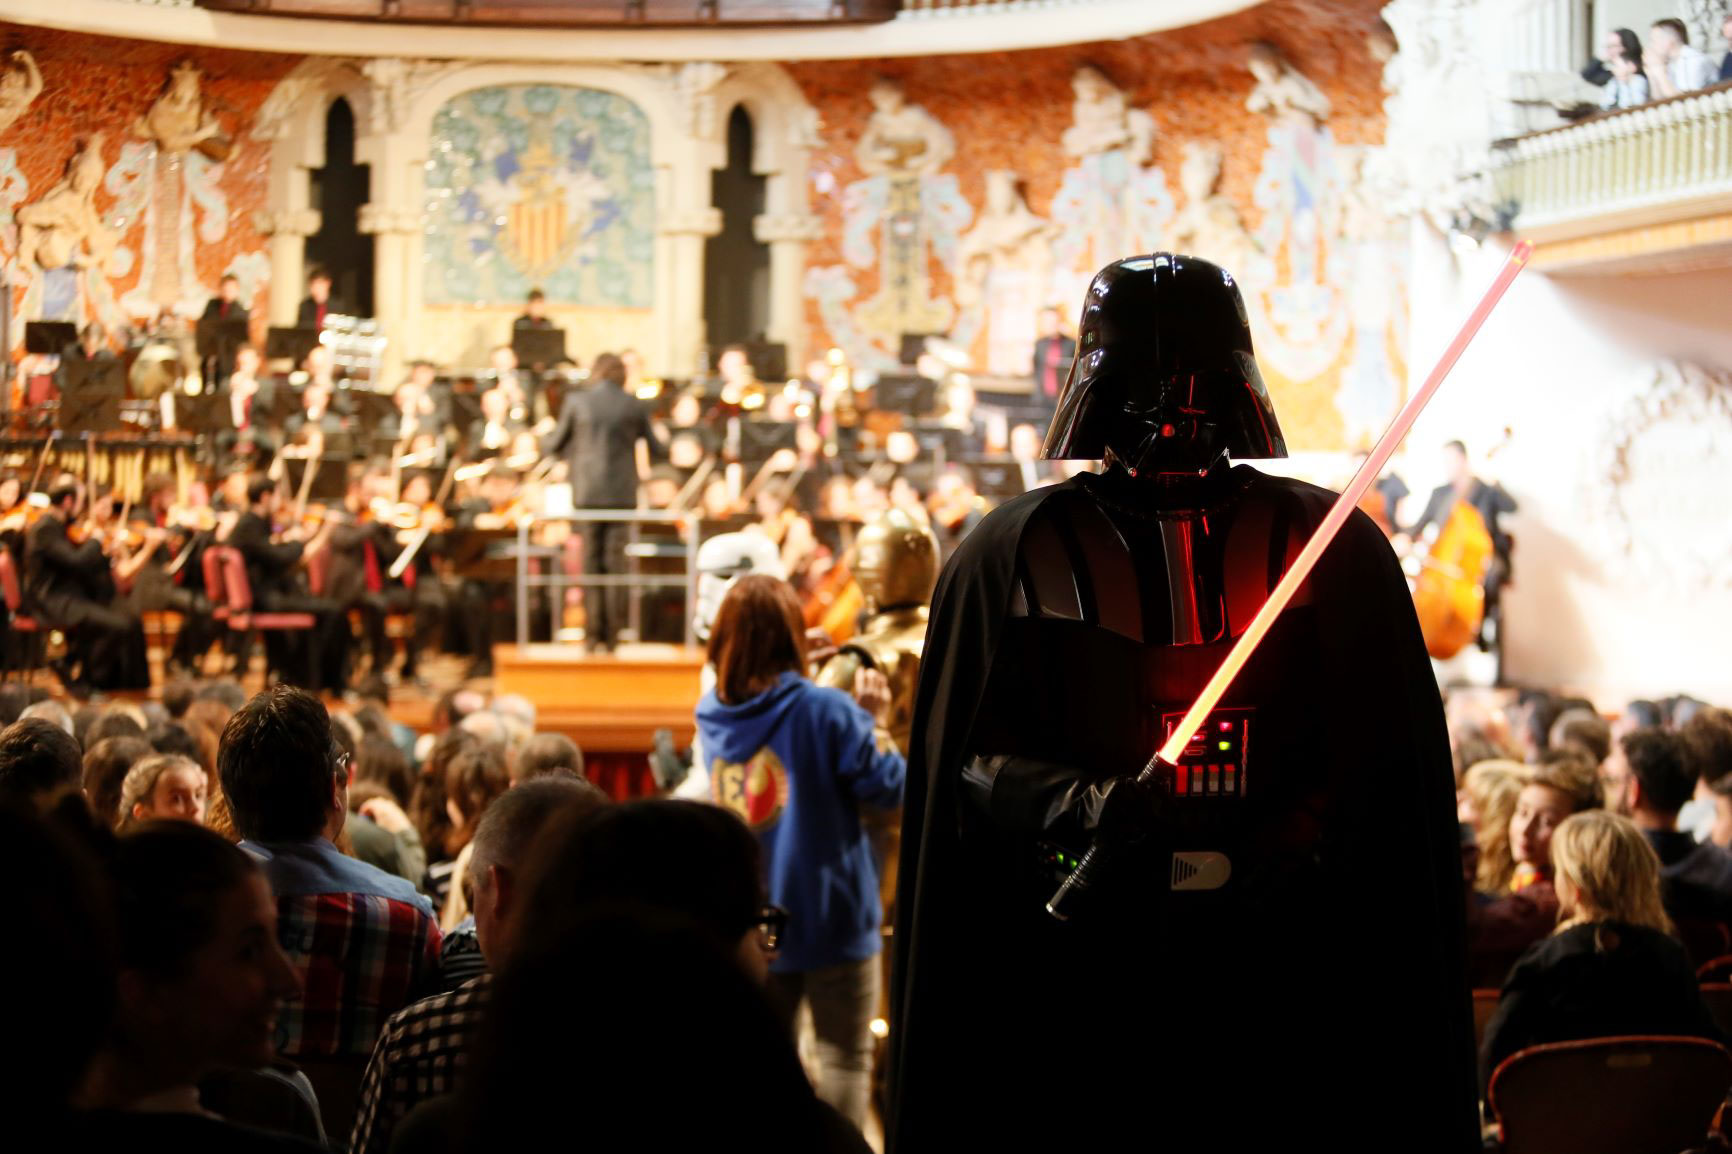 STAR WARS I ALTRES BSO DE JOHN WILLIAMS. ORQUESTRA SIMFÒNICA CAMERA MUSICAE